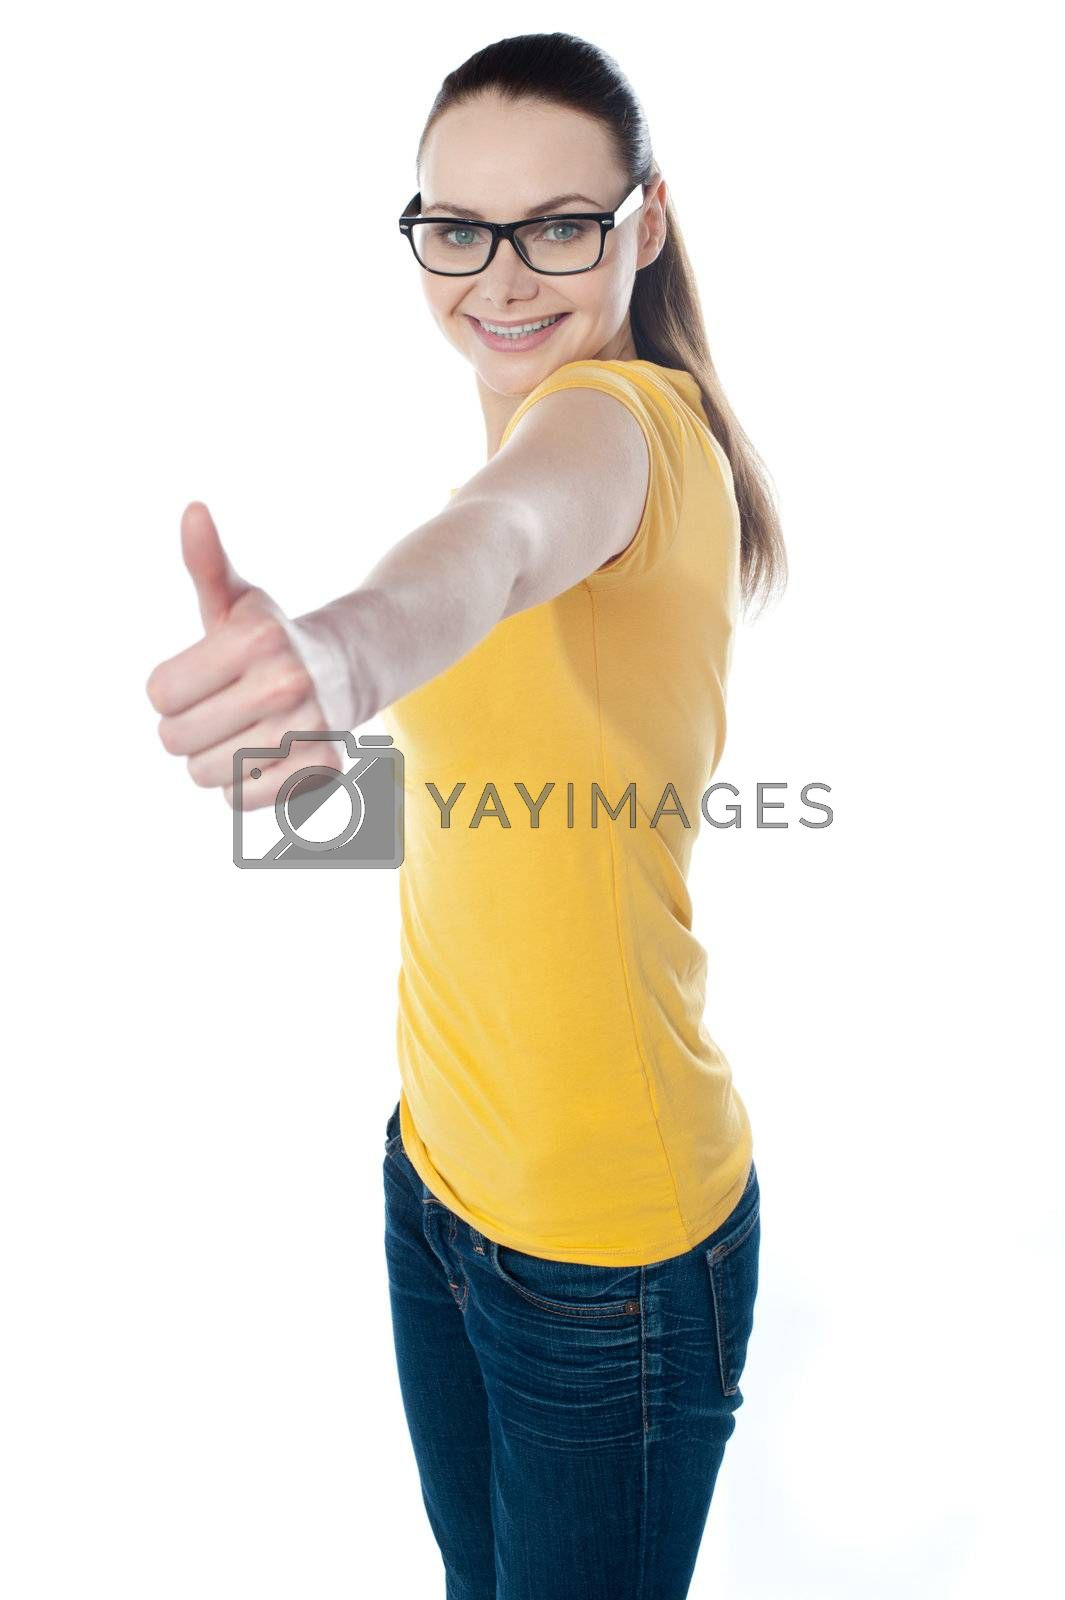 Glamourous teenager gesturing thumbs-up isolated on white